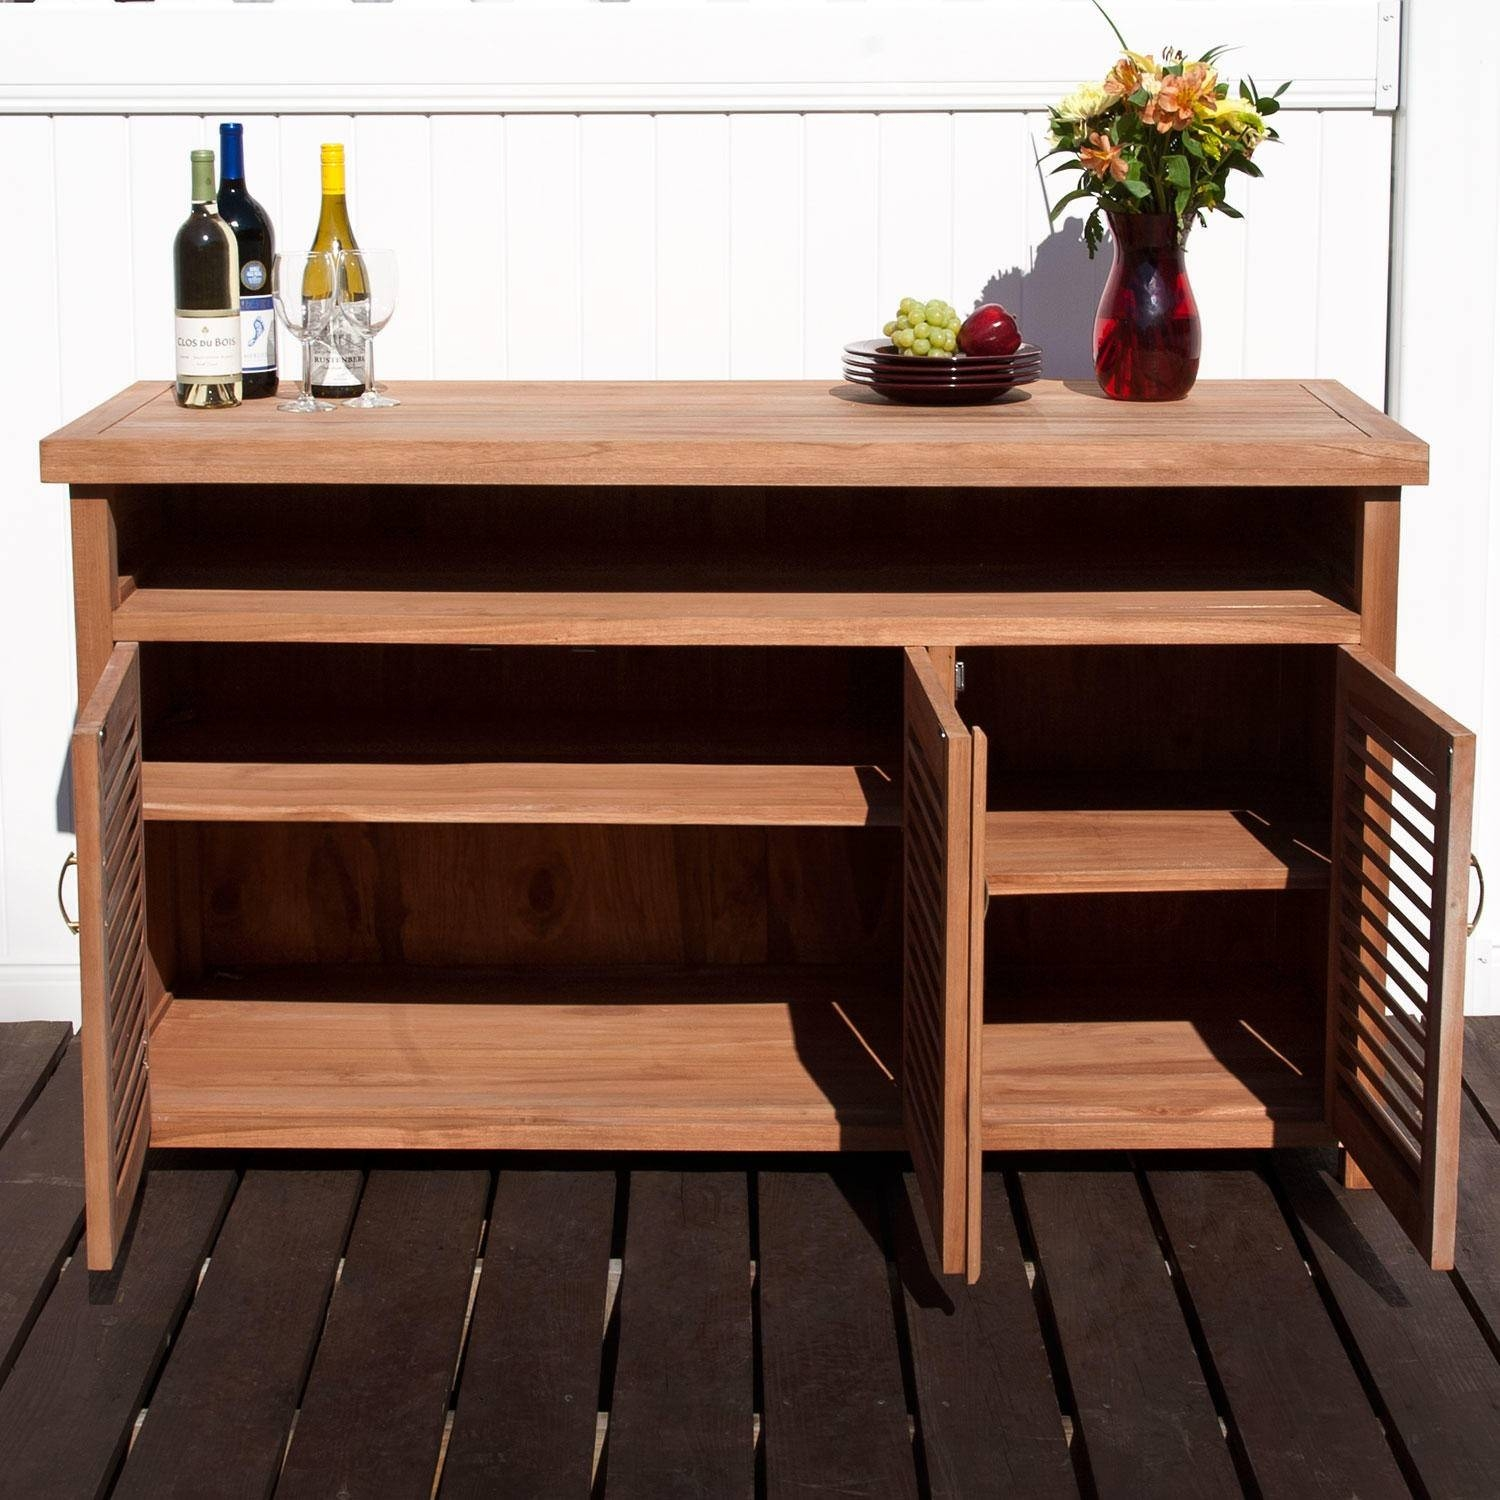 Teak Outdoor Buffet With Storage – Outdoor Intended For Outdoor Sideboard Tables (View 4 of 15)